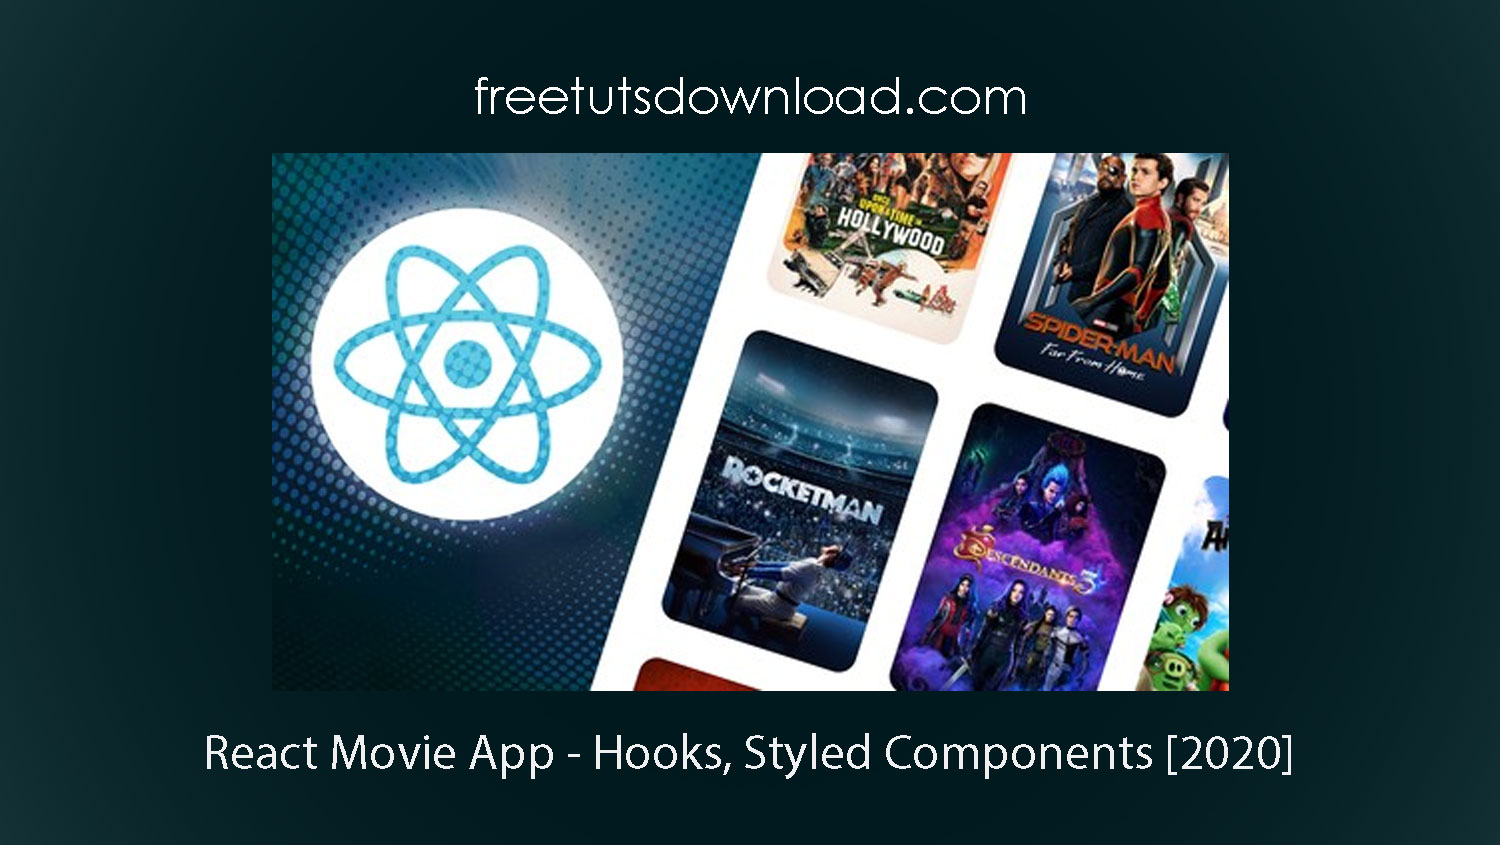 React Movie App - Hooks, Styled Components [2020]